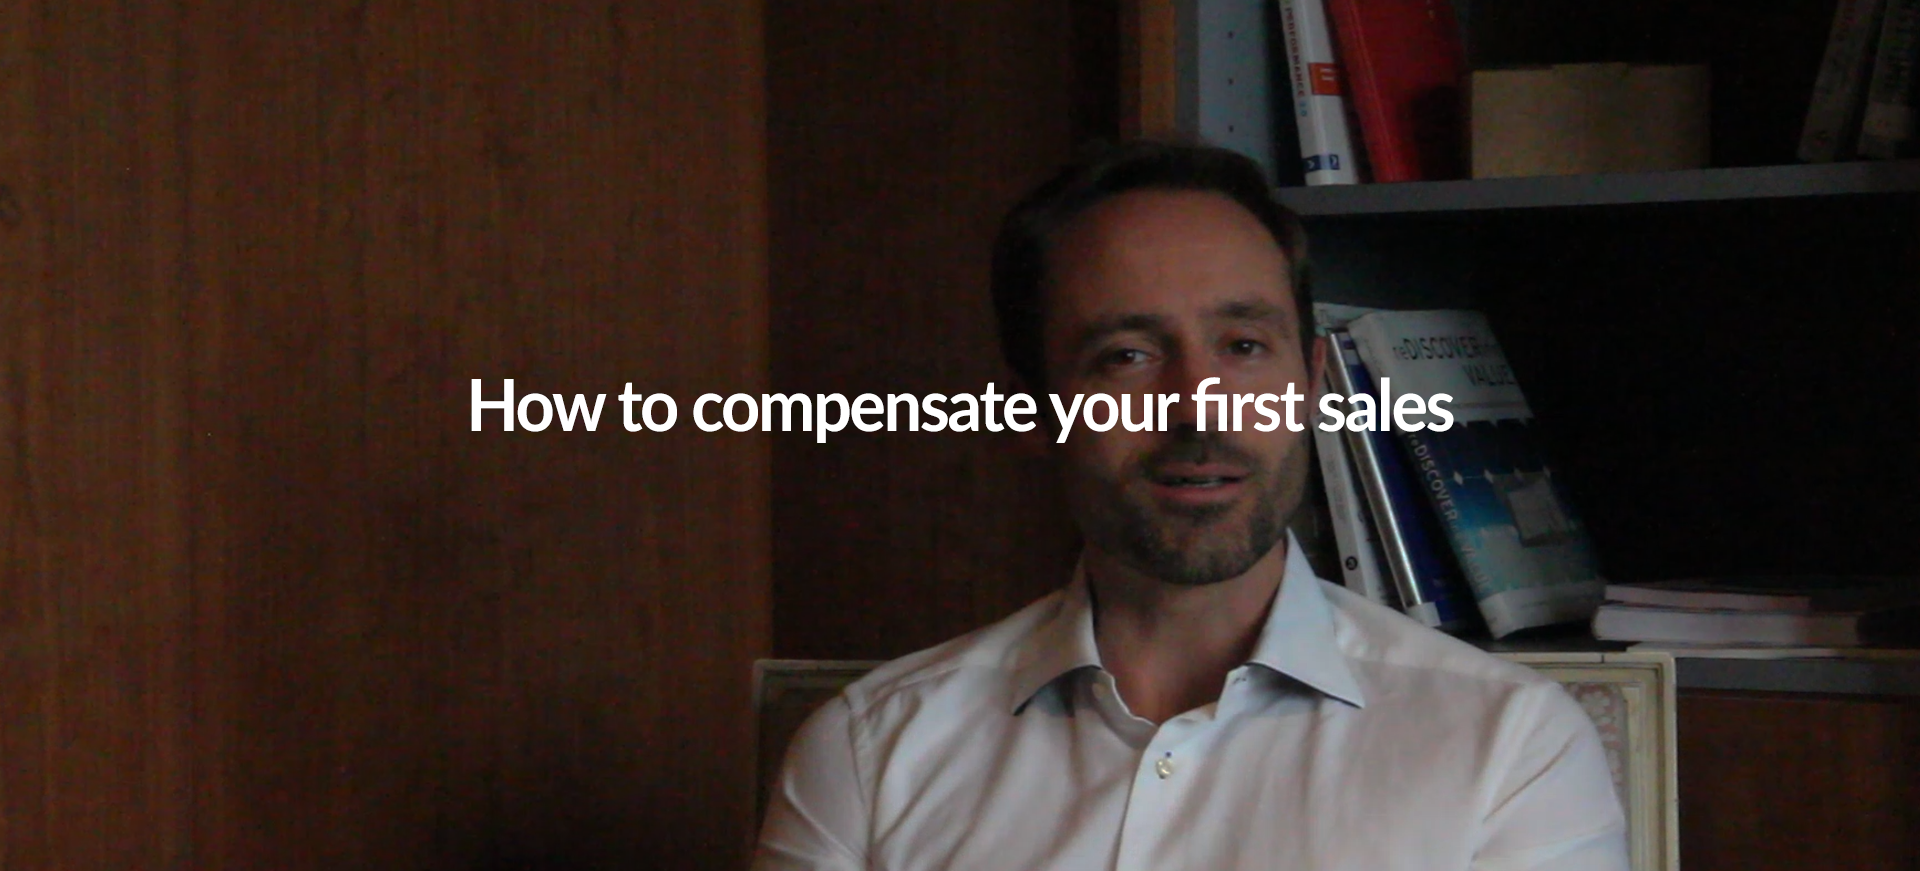 How to compensate your first sales